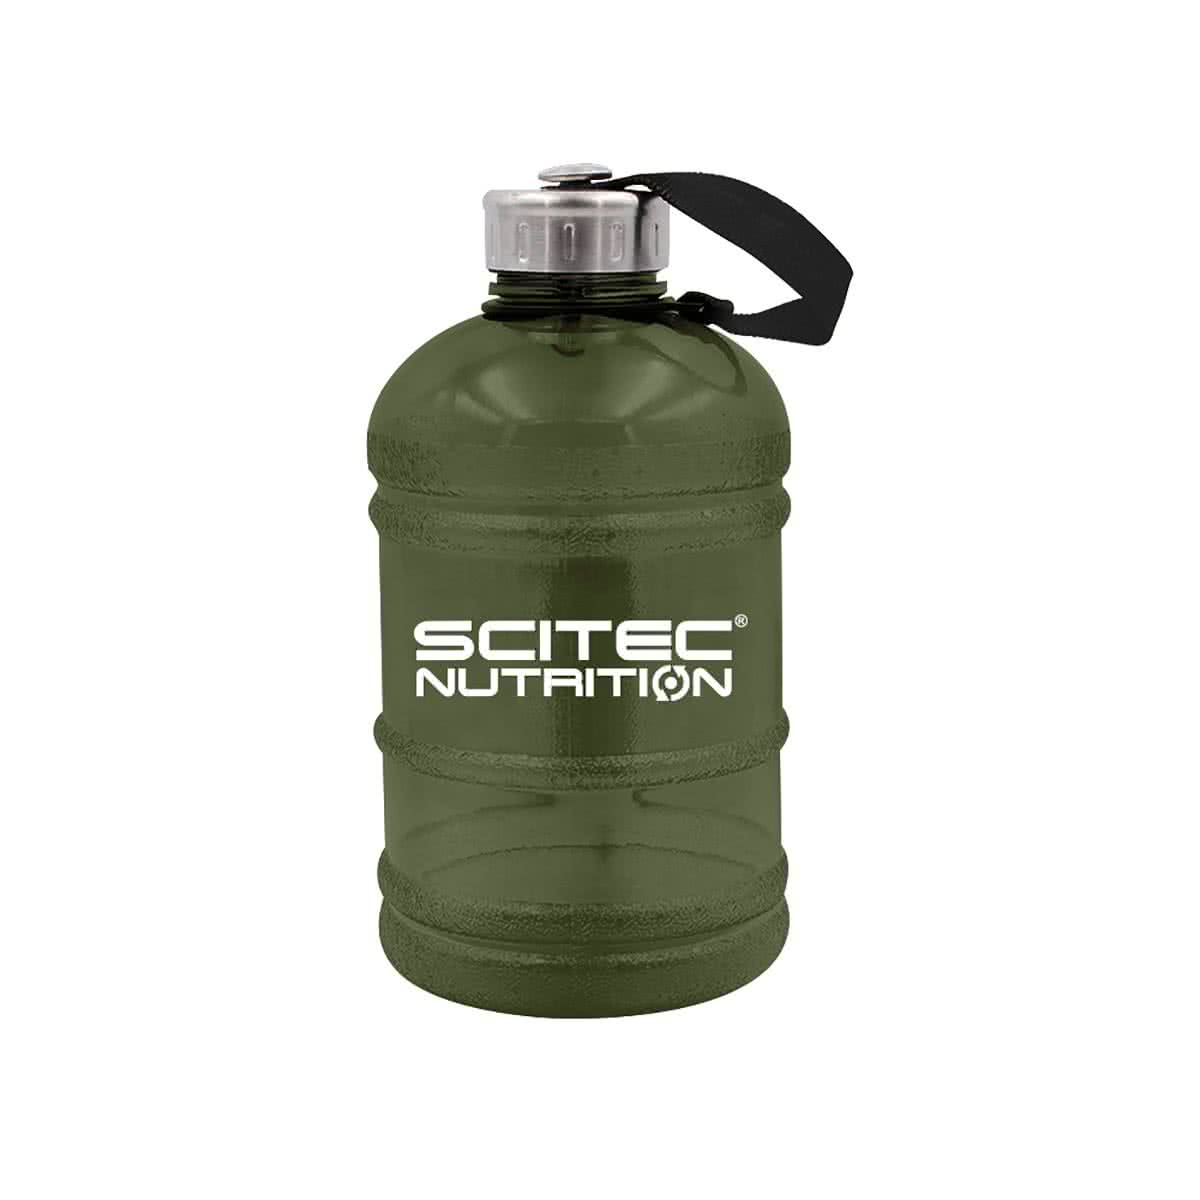 Scitec Nutrition Water Jug 1.89 L